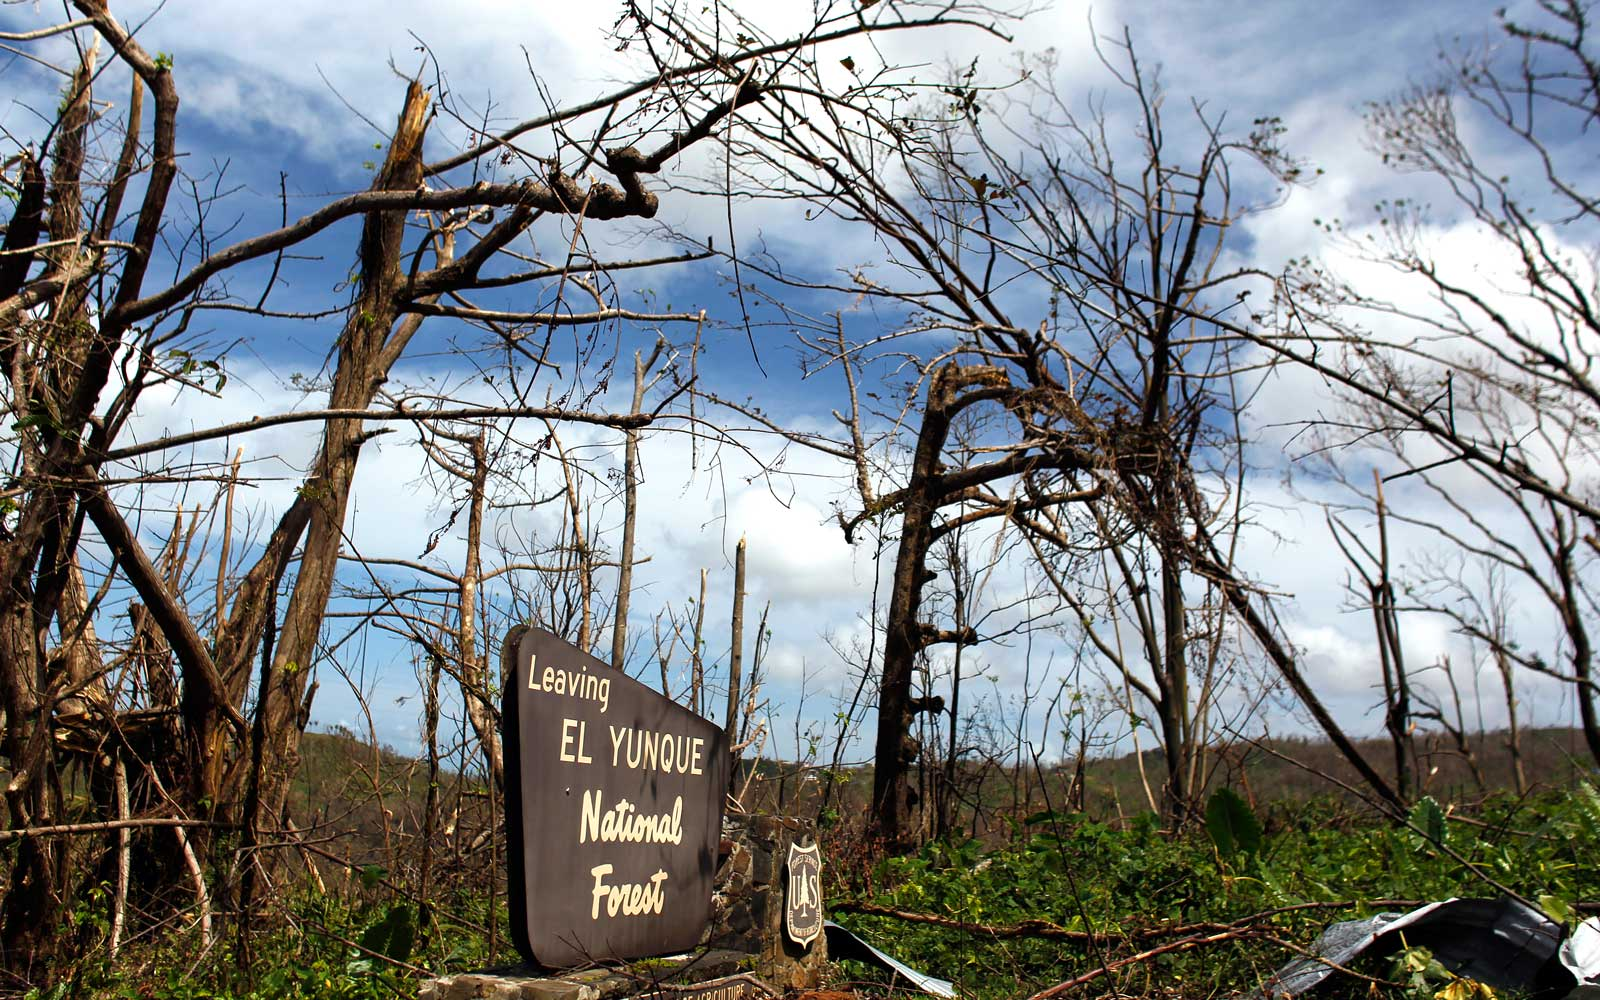 The entrance of the closed El Yunque National Forest affected by the passing of Hurricane Maria